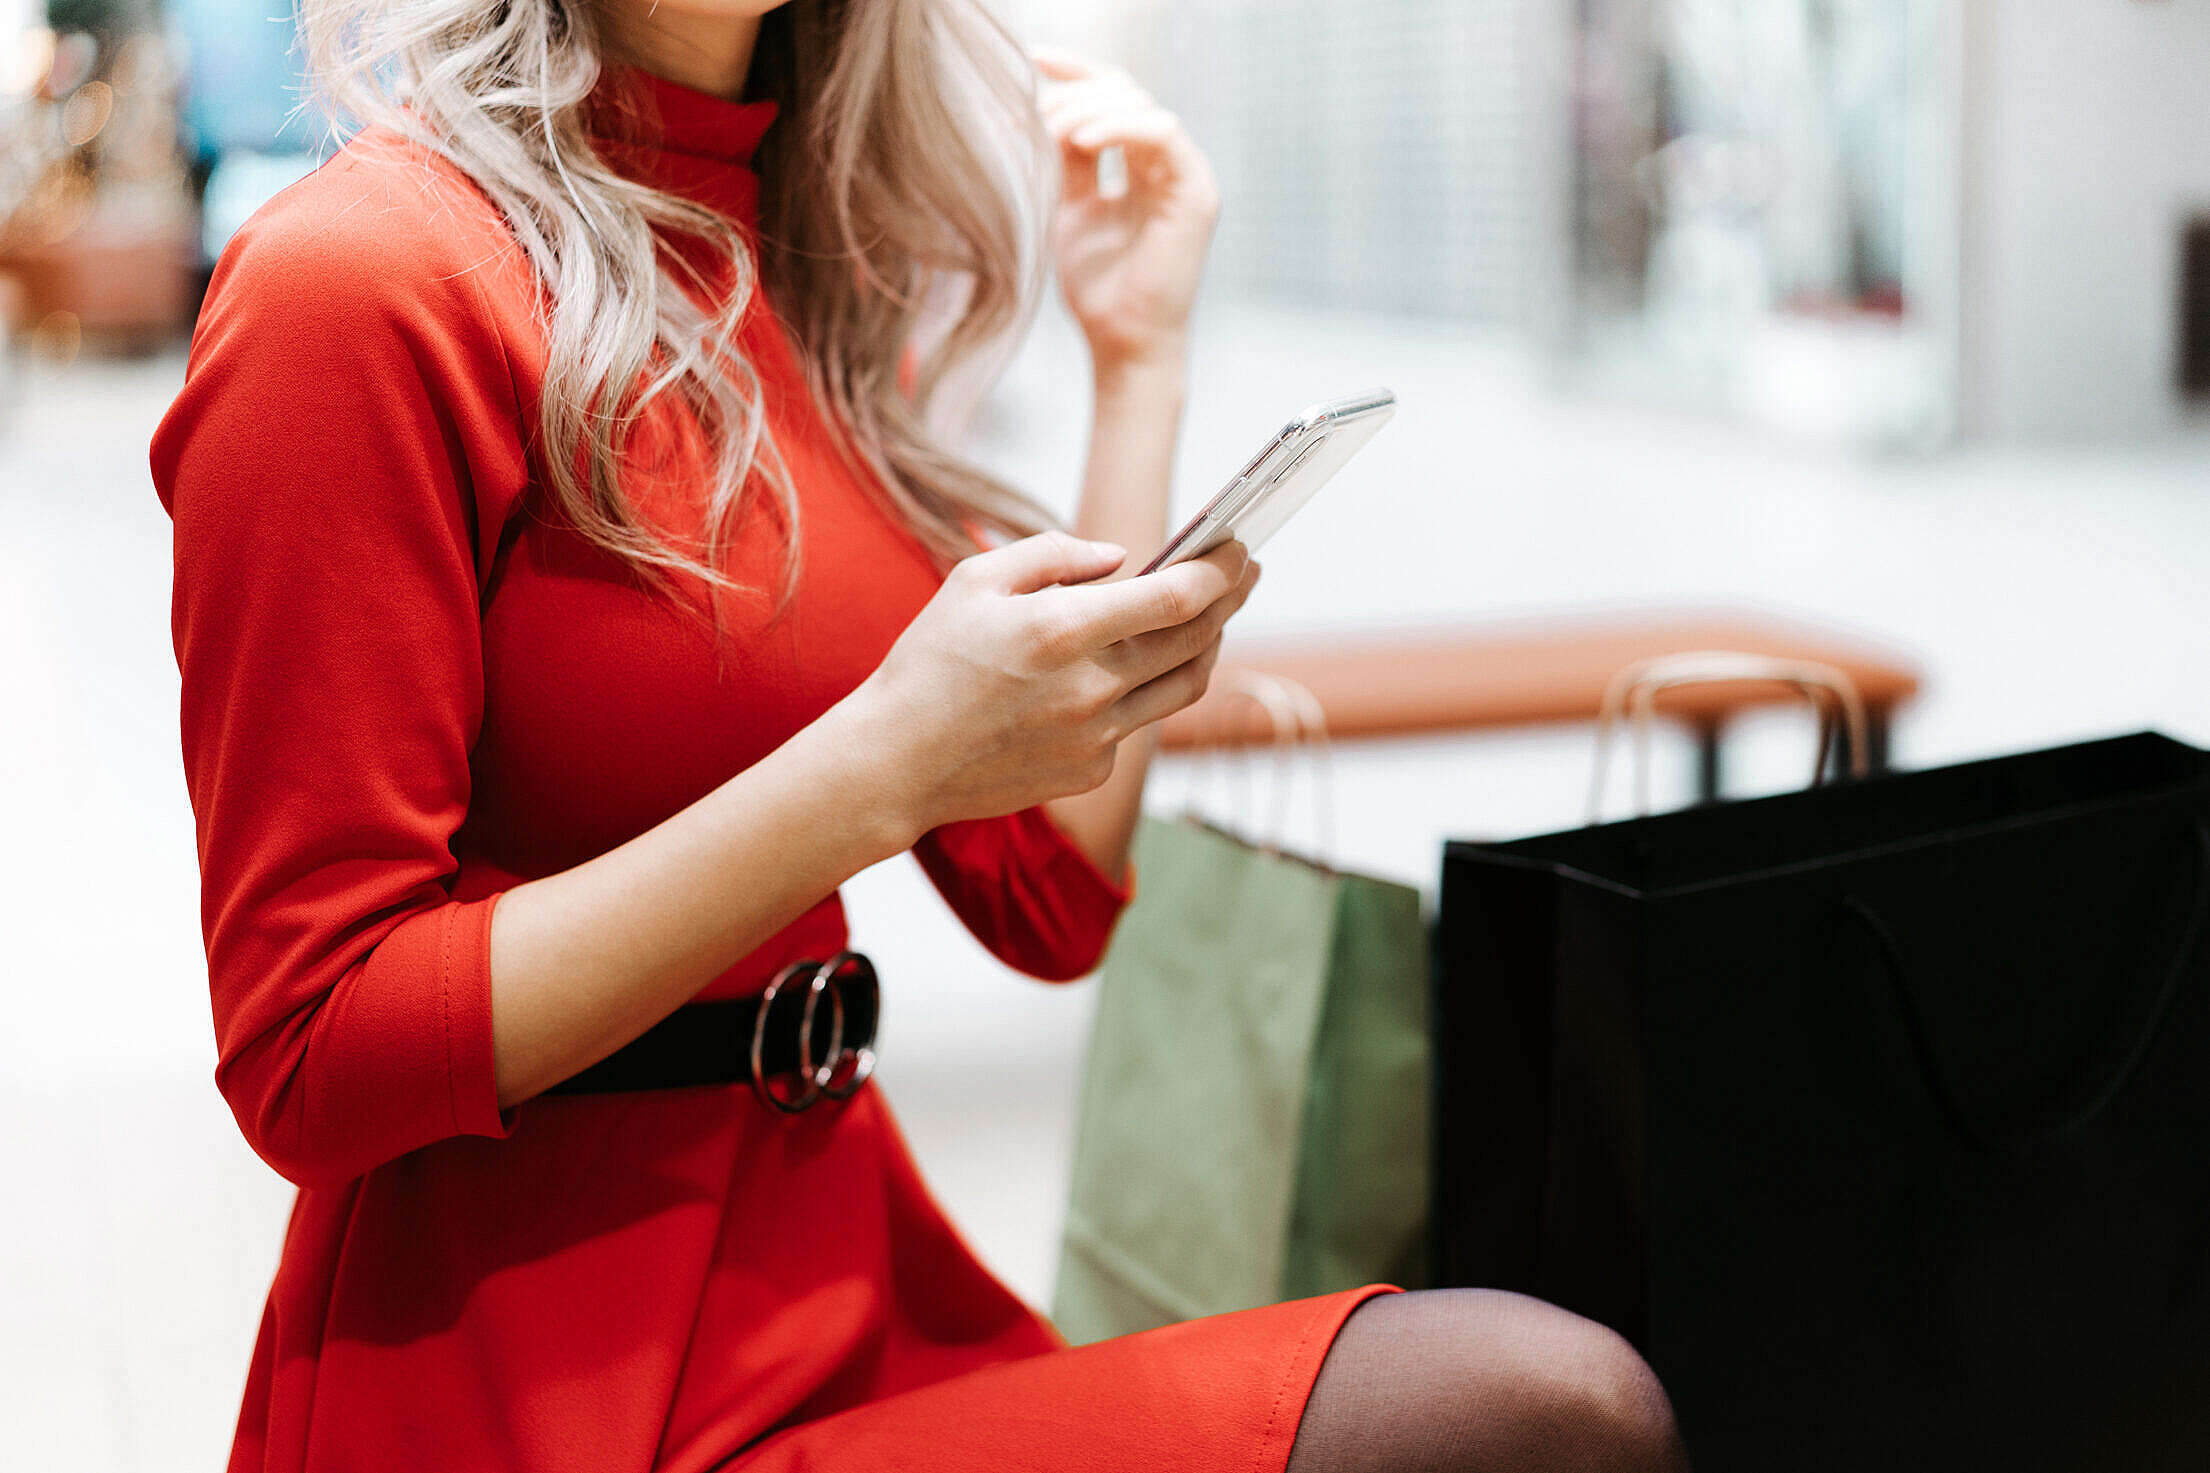 Beautiful Woman in Red Dress Using Her Smartphone Free Stock Photo